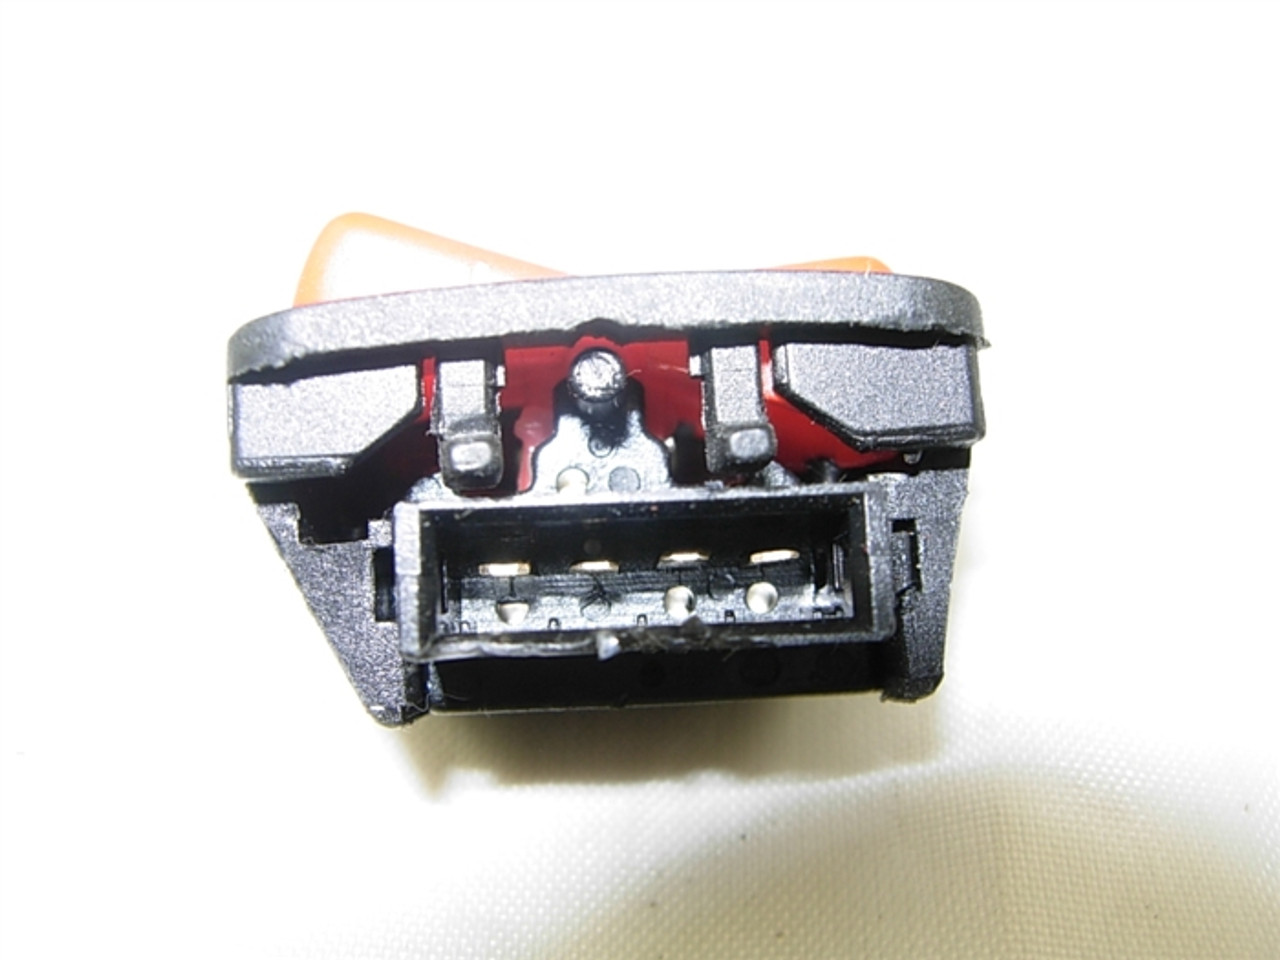 kill switch button 10940-a53-4